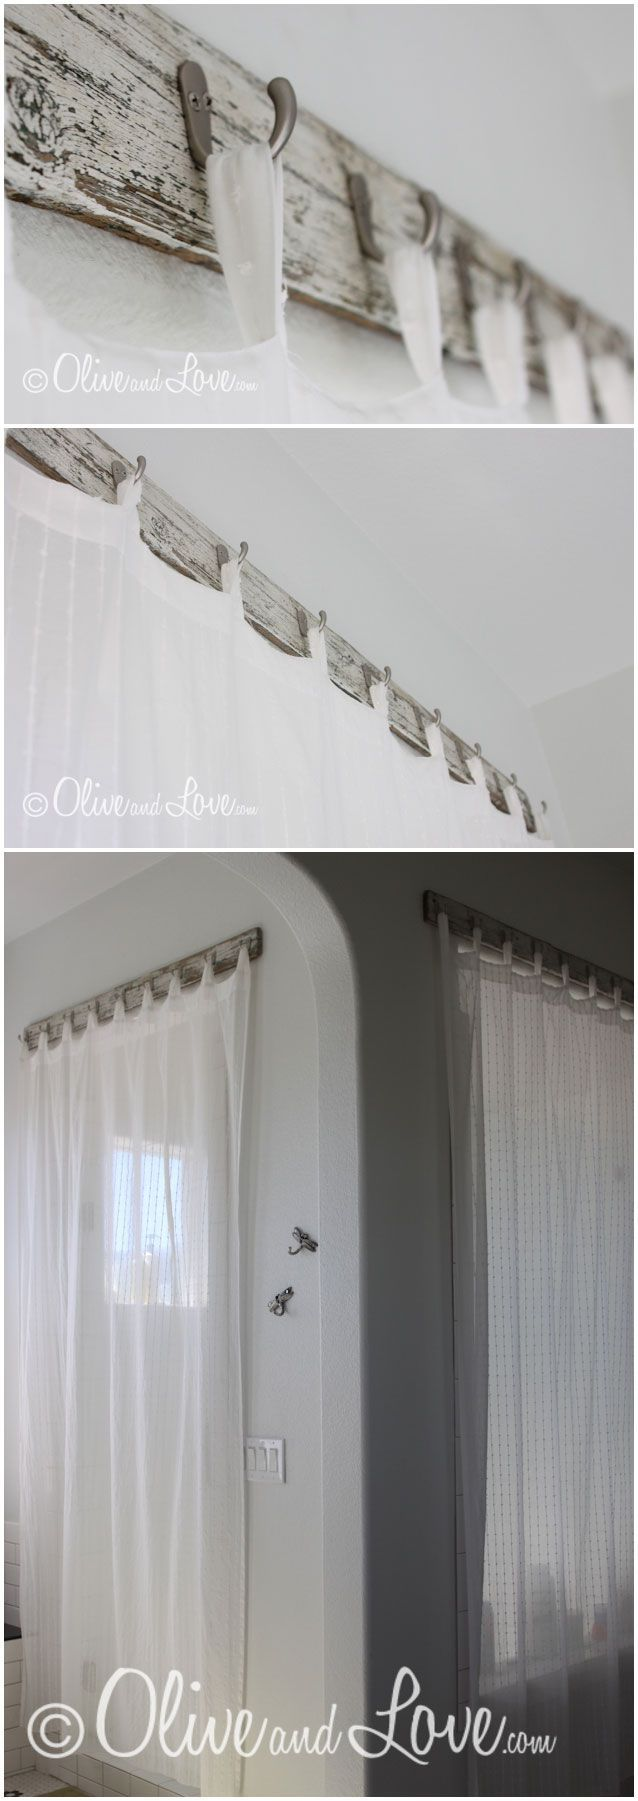 CURTAINS :: Hang curtains the new way! Scrap wood from an old bench, cheap hooks from Home Depot & sheer curtains from IkEA